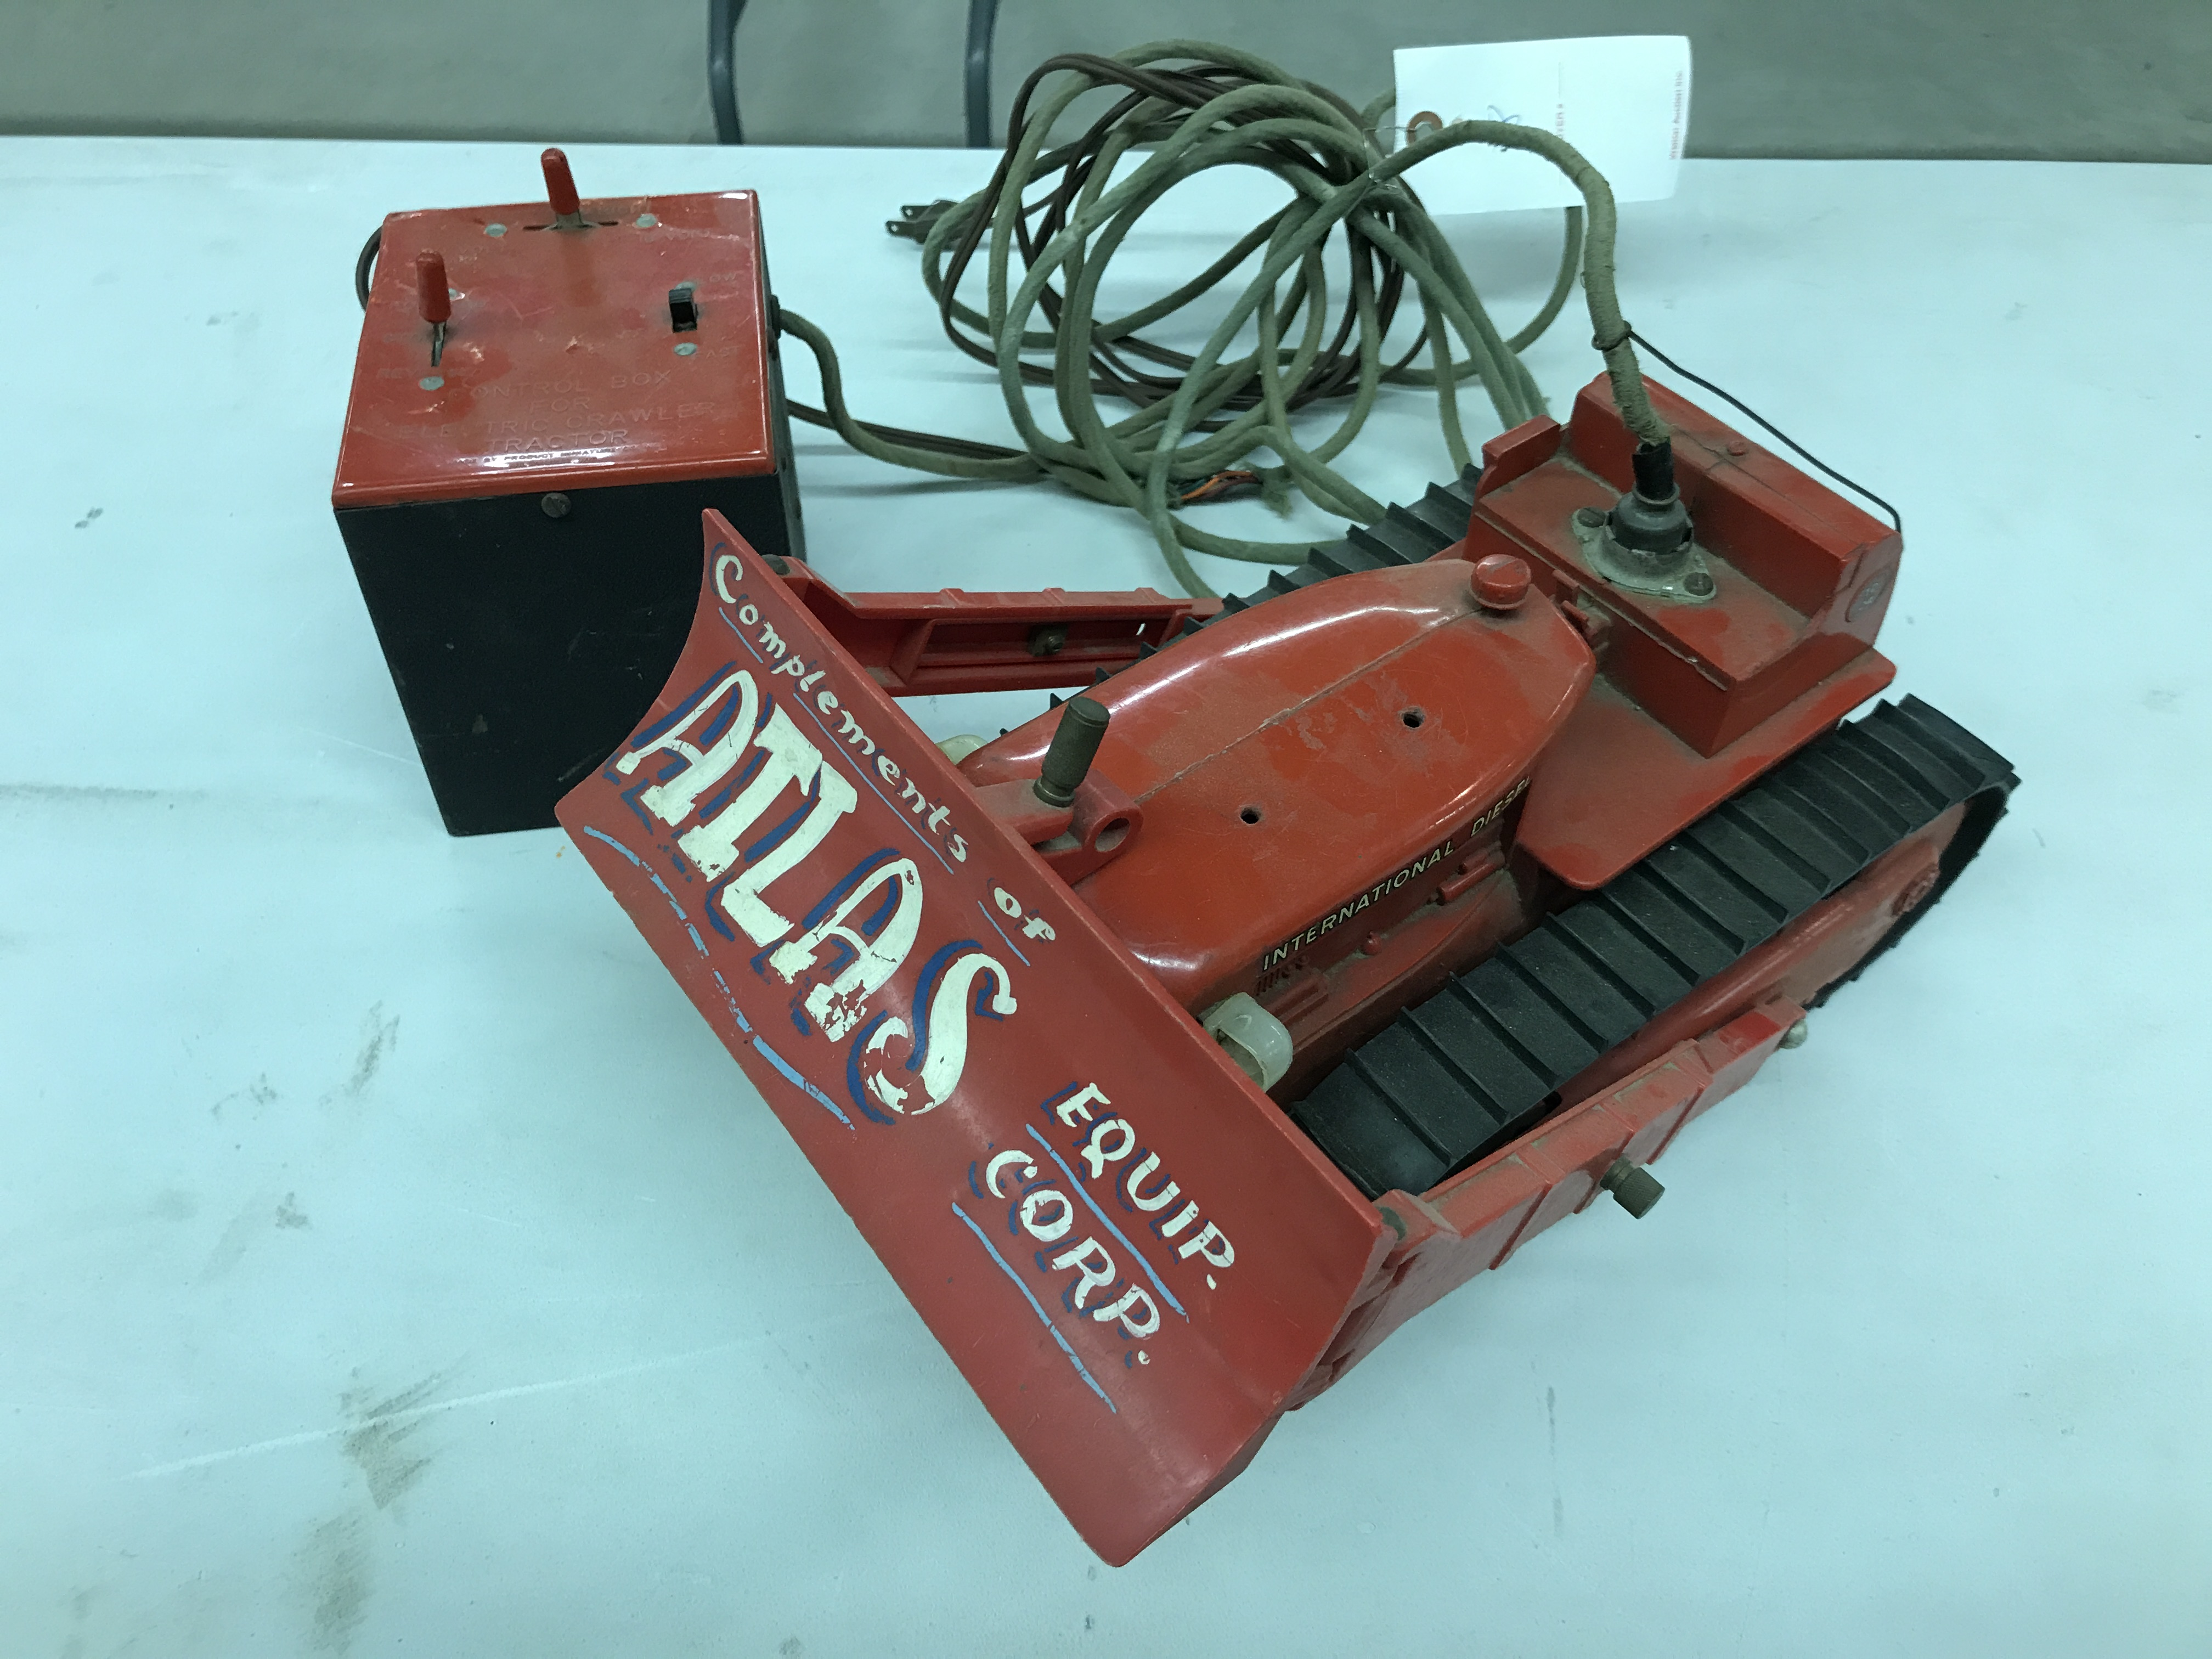 Lot 36 - Atlas Equip. TD24 Battery Operated Toy